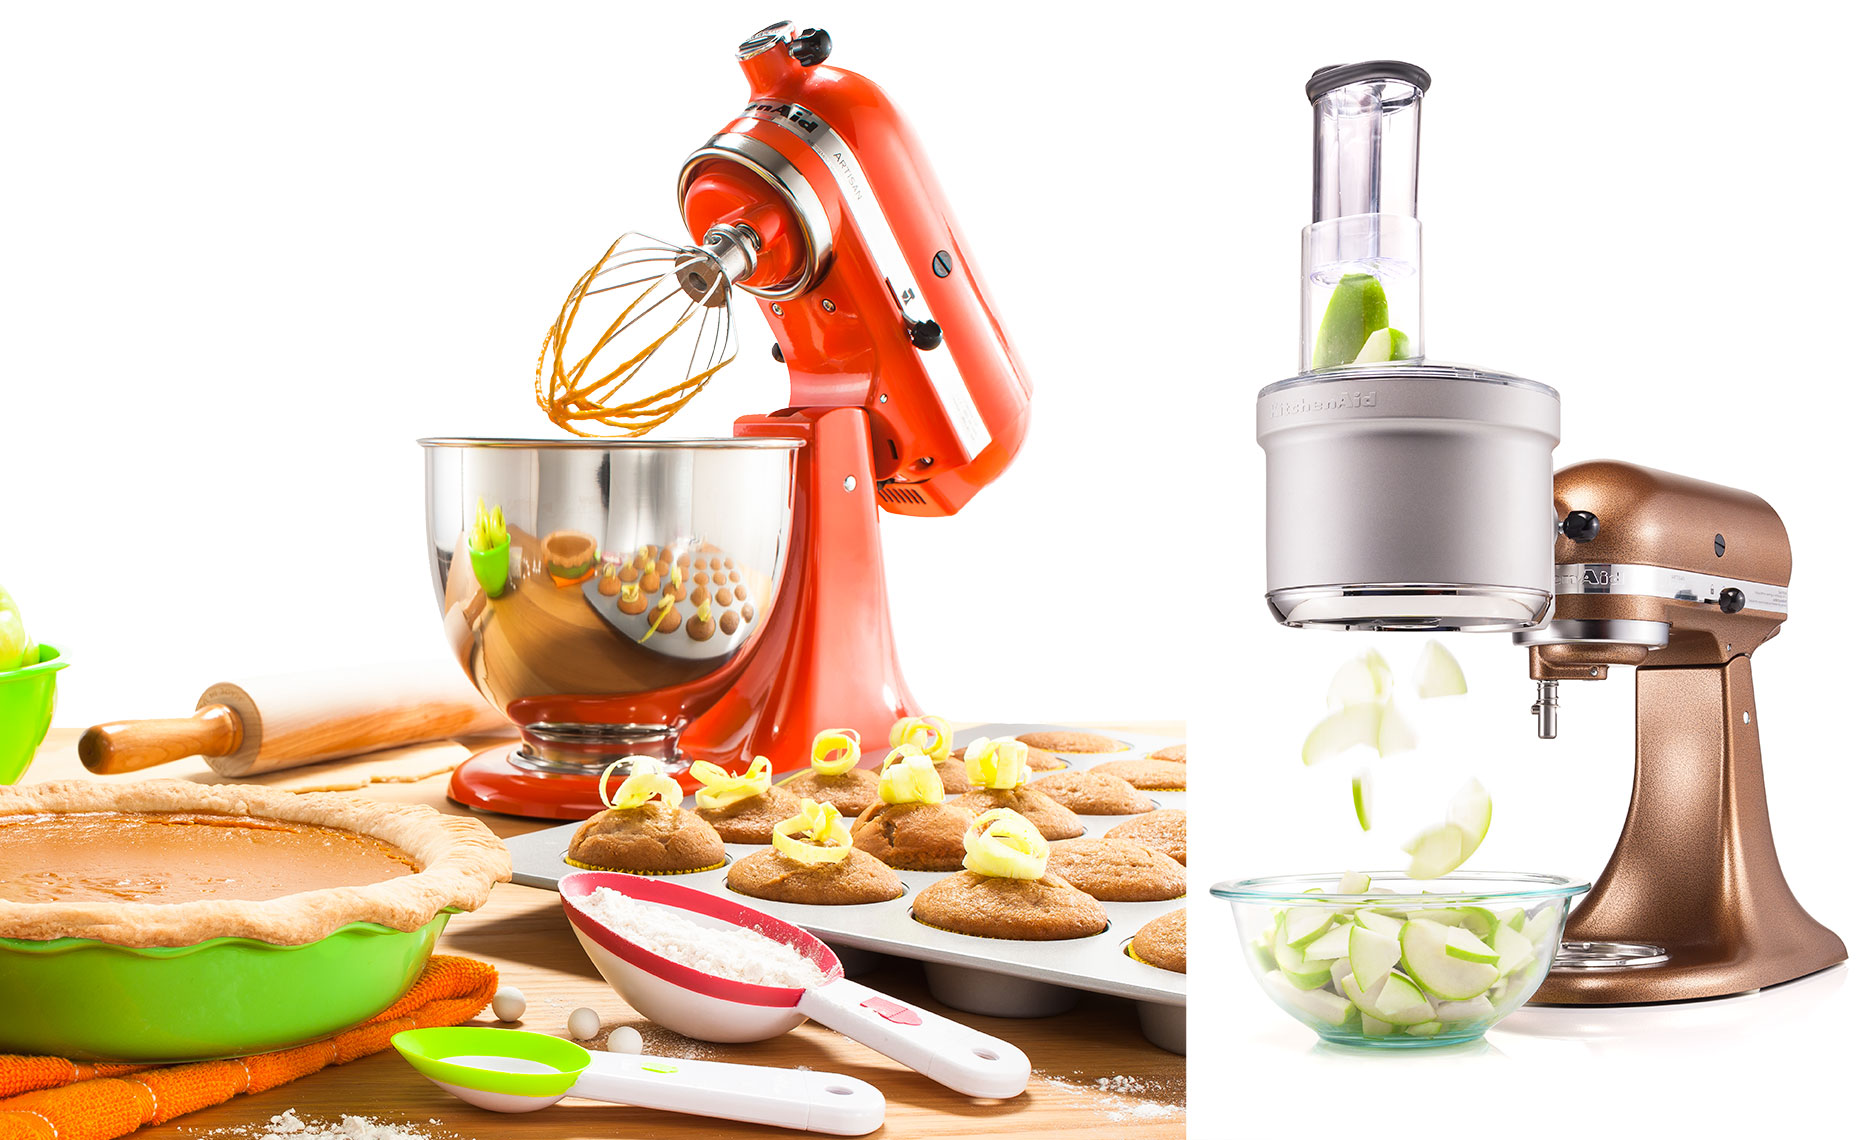 Kitchenaid blender with muffins and apple pie and attachment that cuts apples